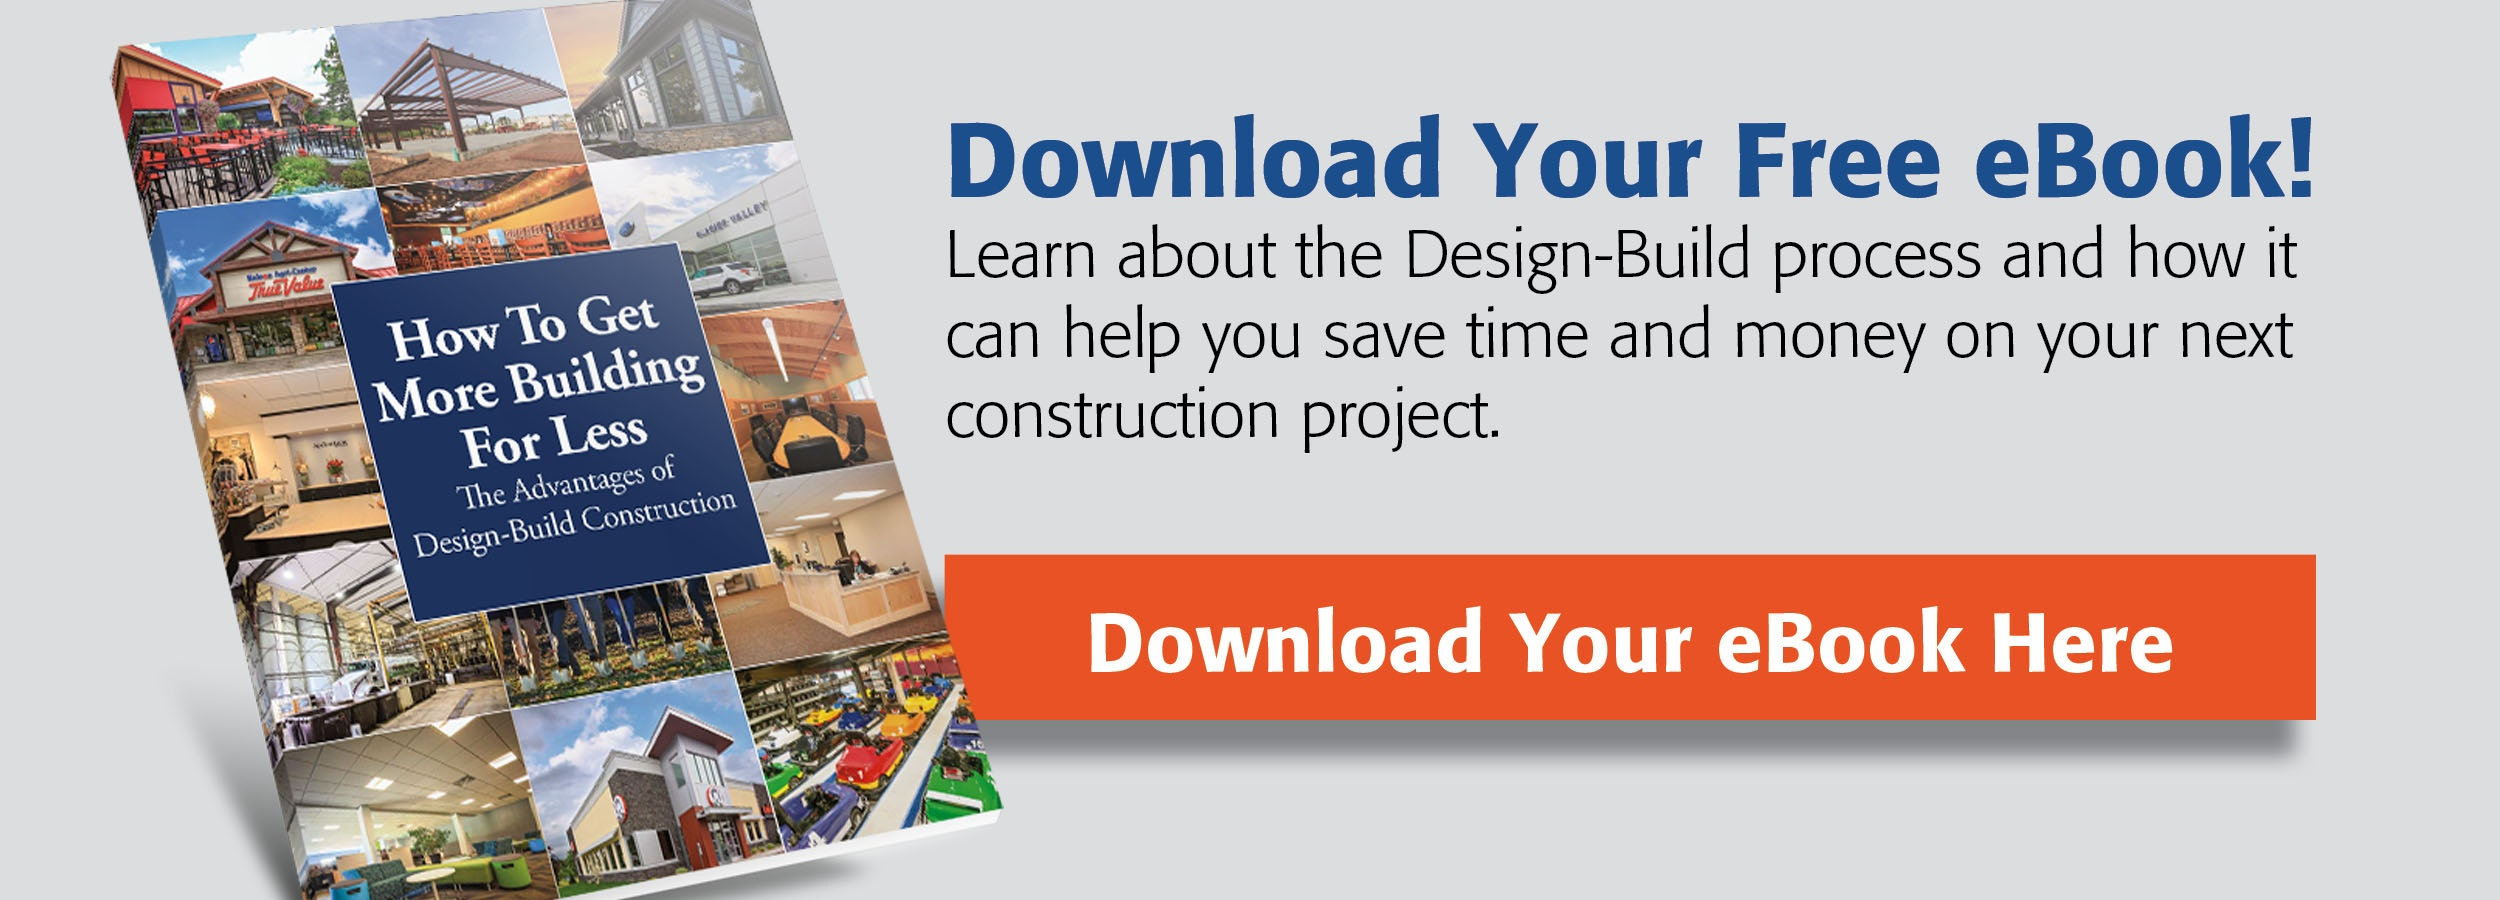 Download How to Get More Building for less eBook | Friede & Associates